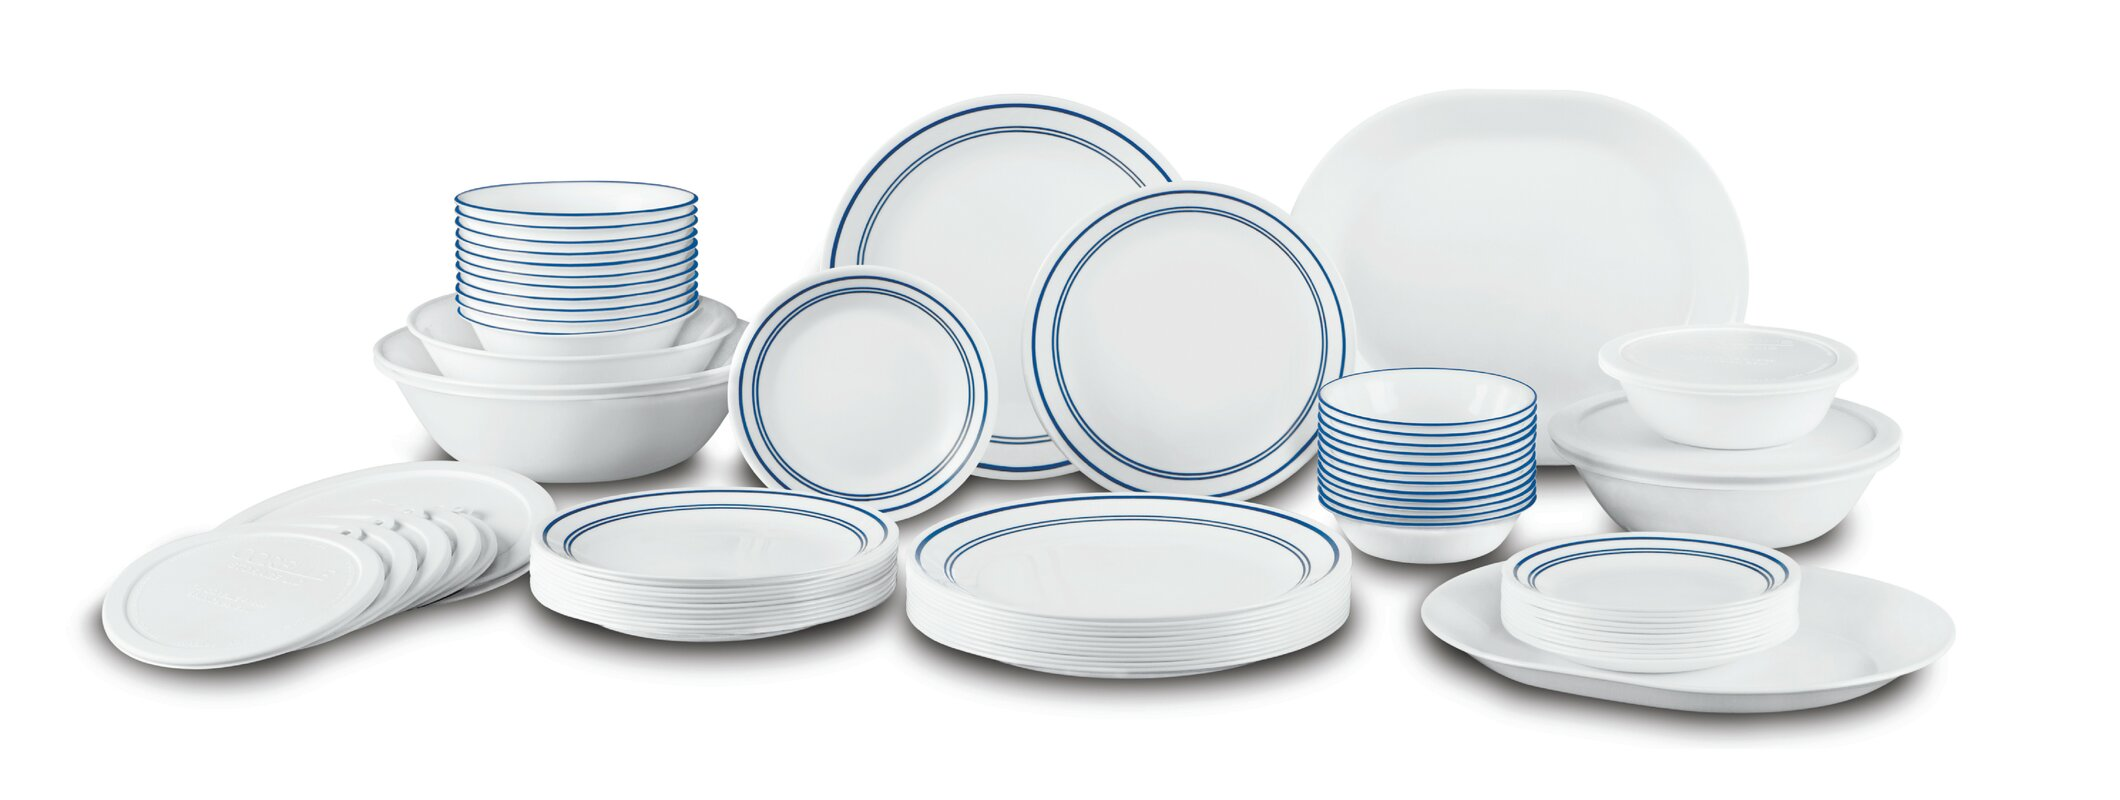 Classic Cafe Living Ware 74 Piece Dinnerware Set Service for 12  sc 1 st  Wayfair & Corelle Classic Cafe Living Ware 74 Piece Dinnerware Set Service ...